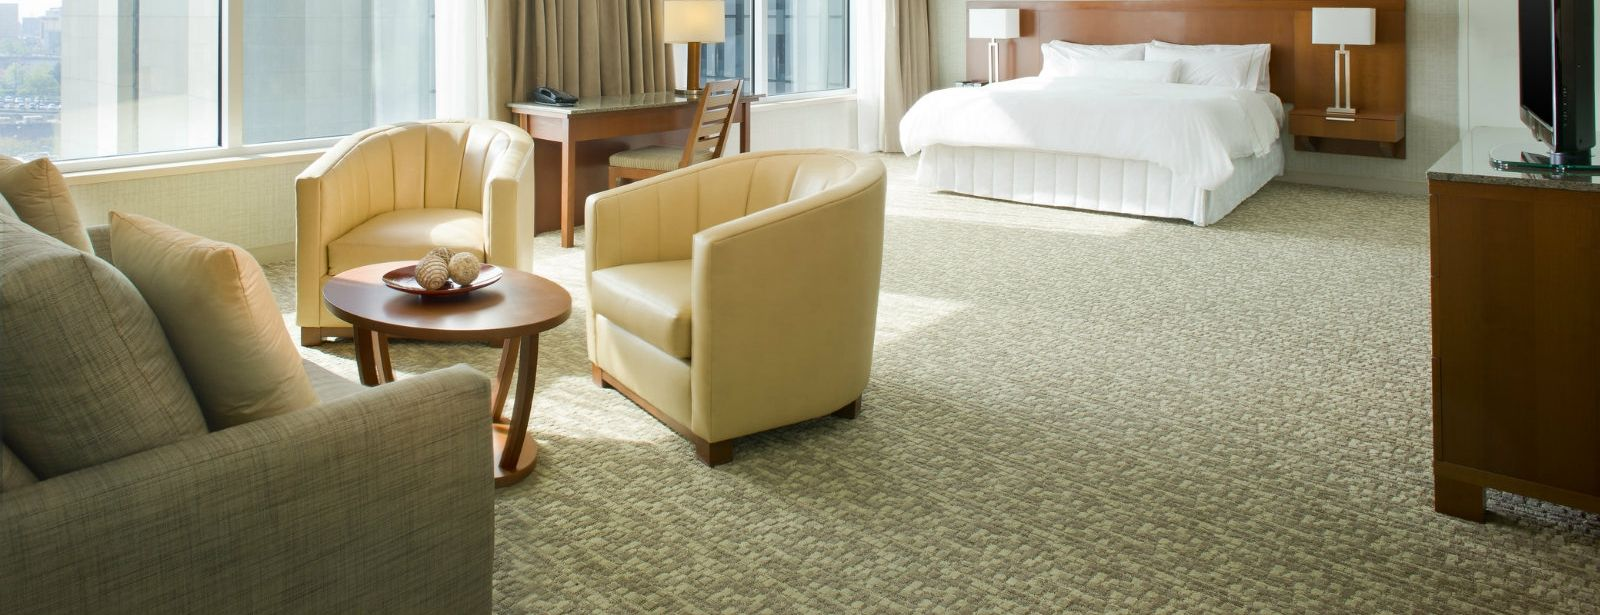 Westin Business King Suite